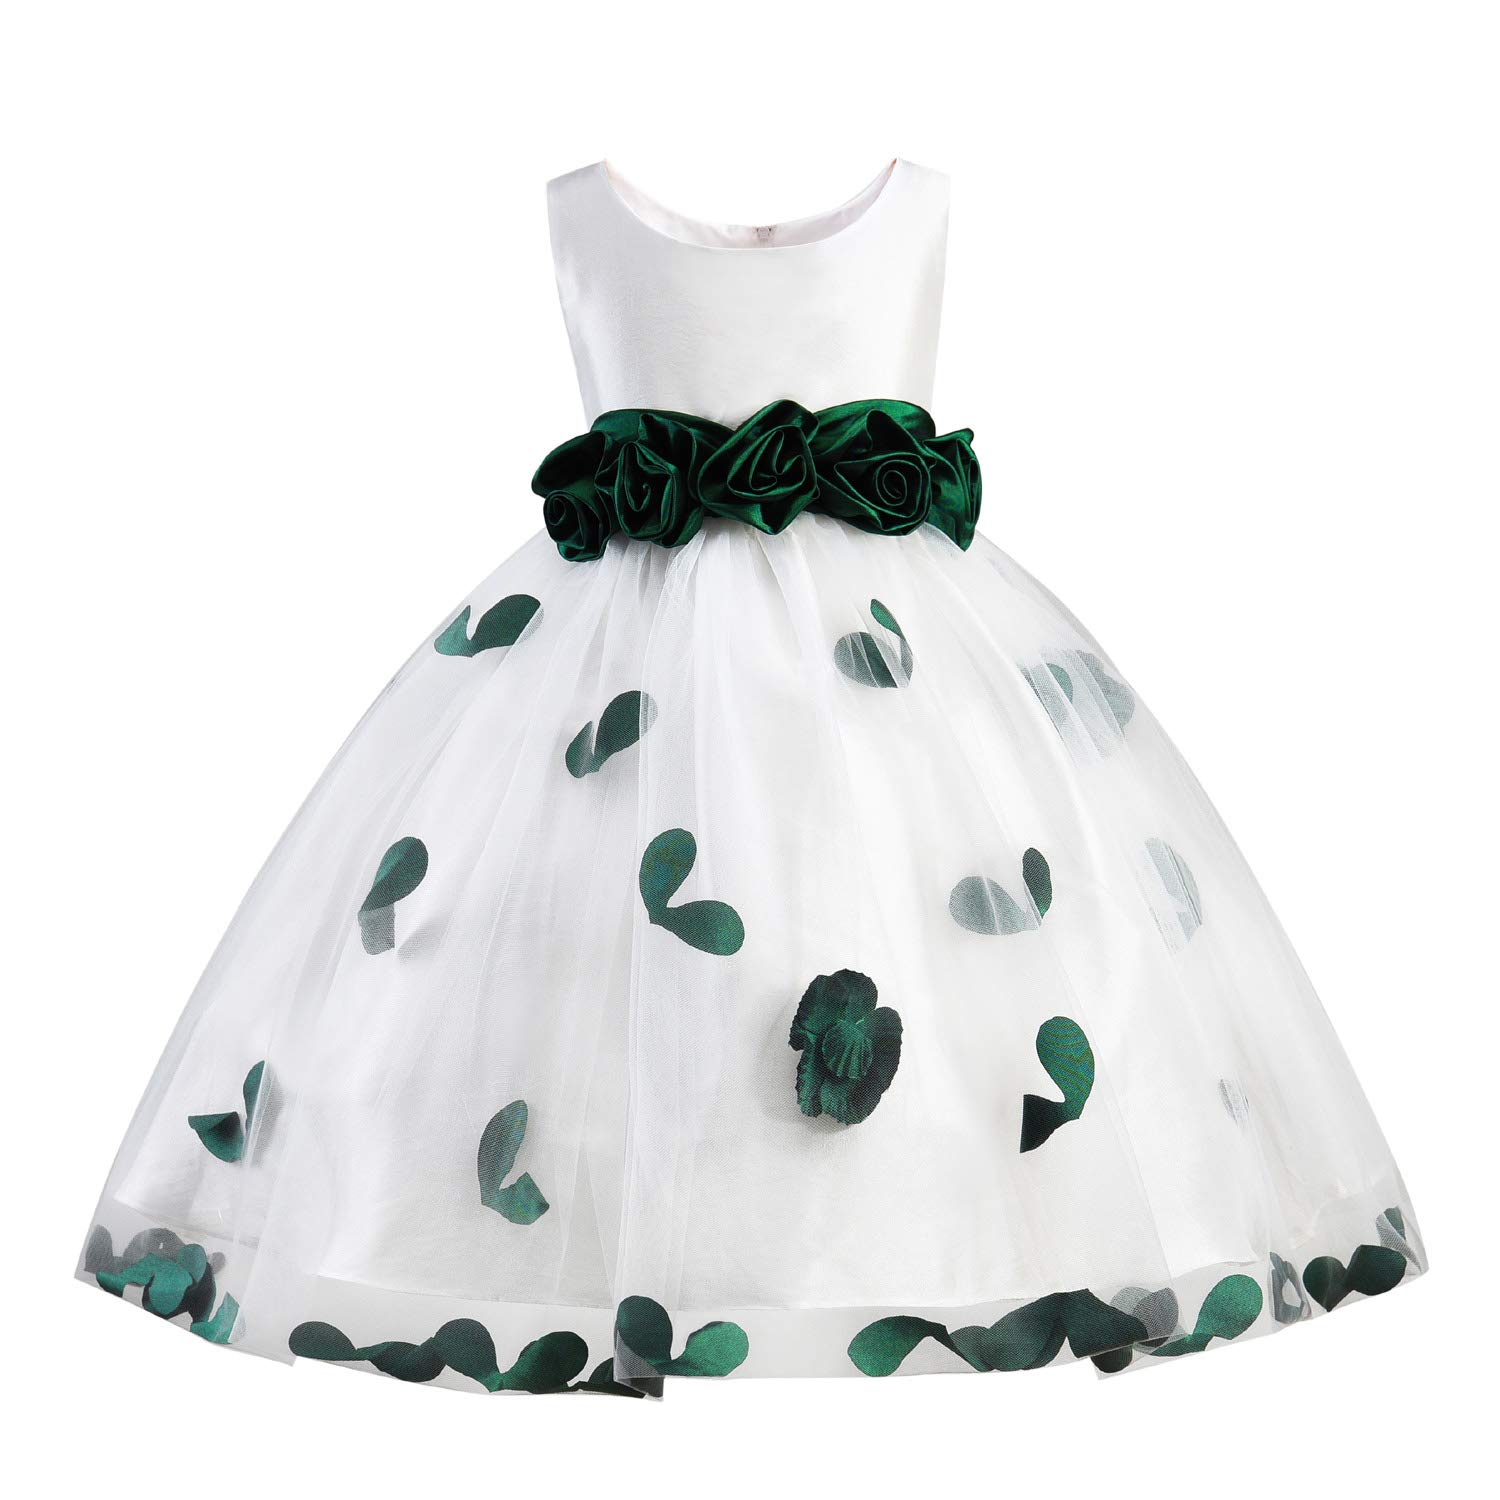 b361135a185 Amazon.com  Girls Tutu Bow Dress Flower Petals Princess Dress with 3D Roses  for Birthday Wedding Party  Clothing